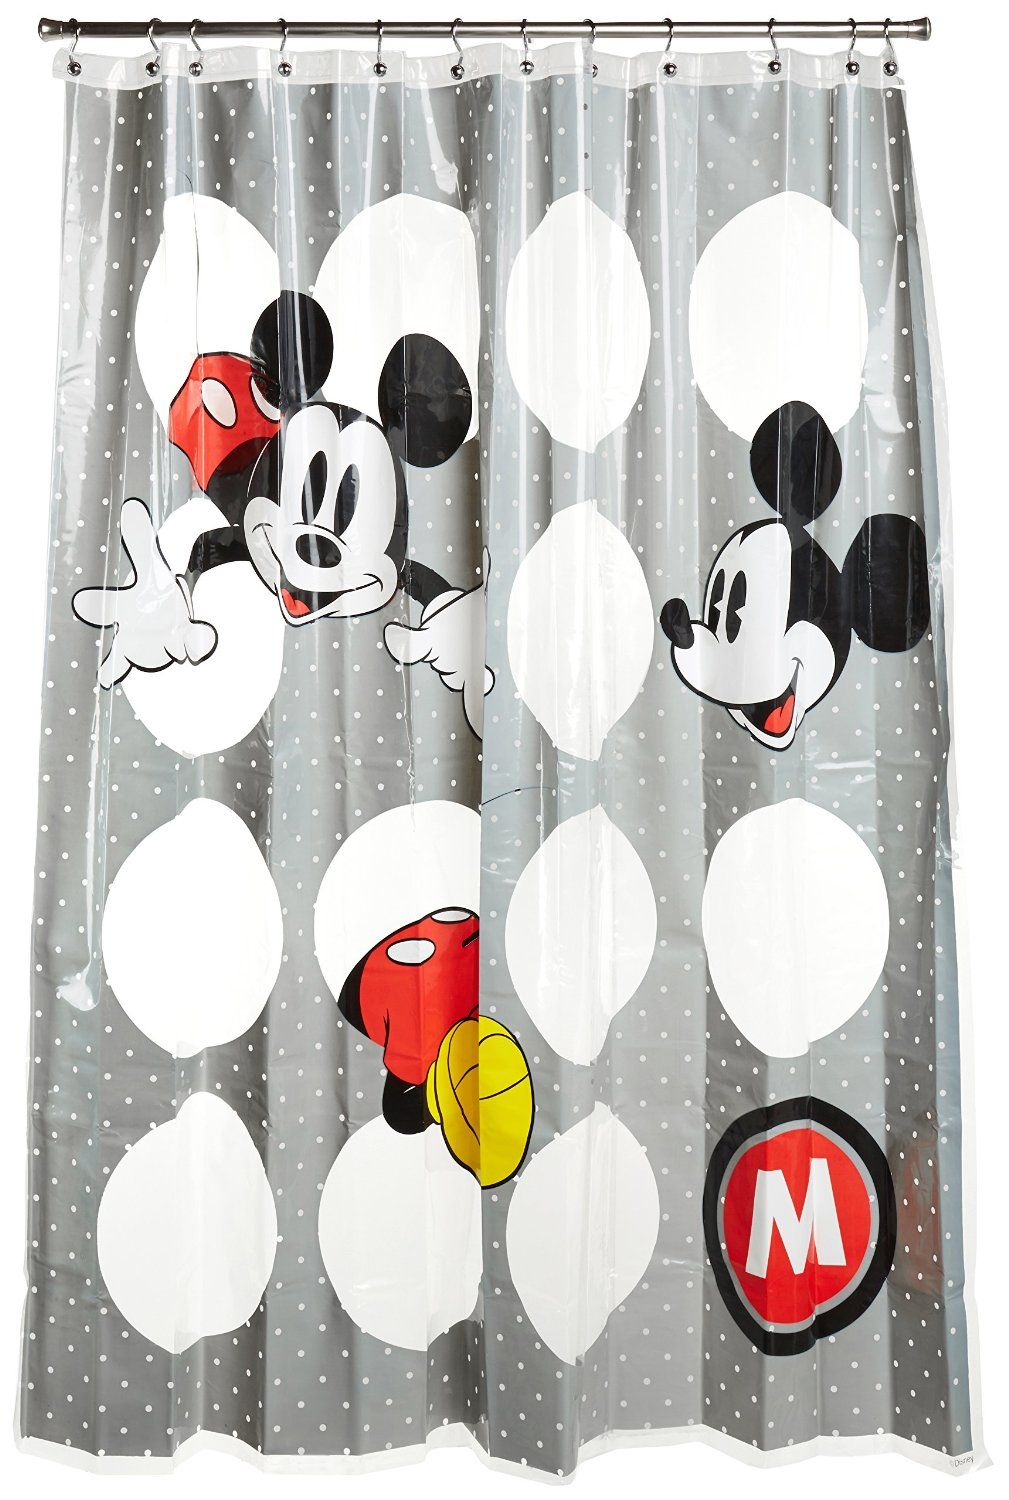 Disney Mickey Mouse Shower Curtain